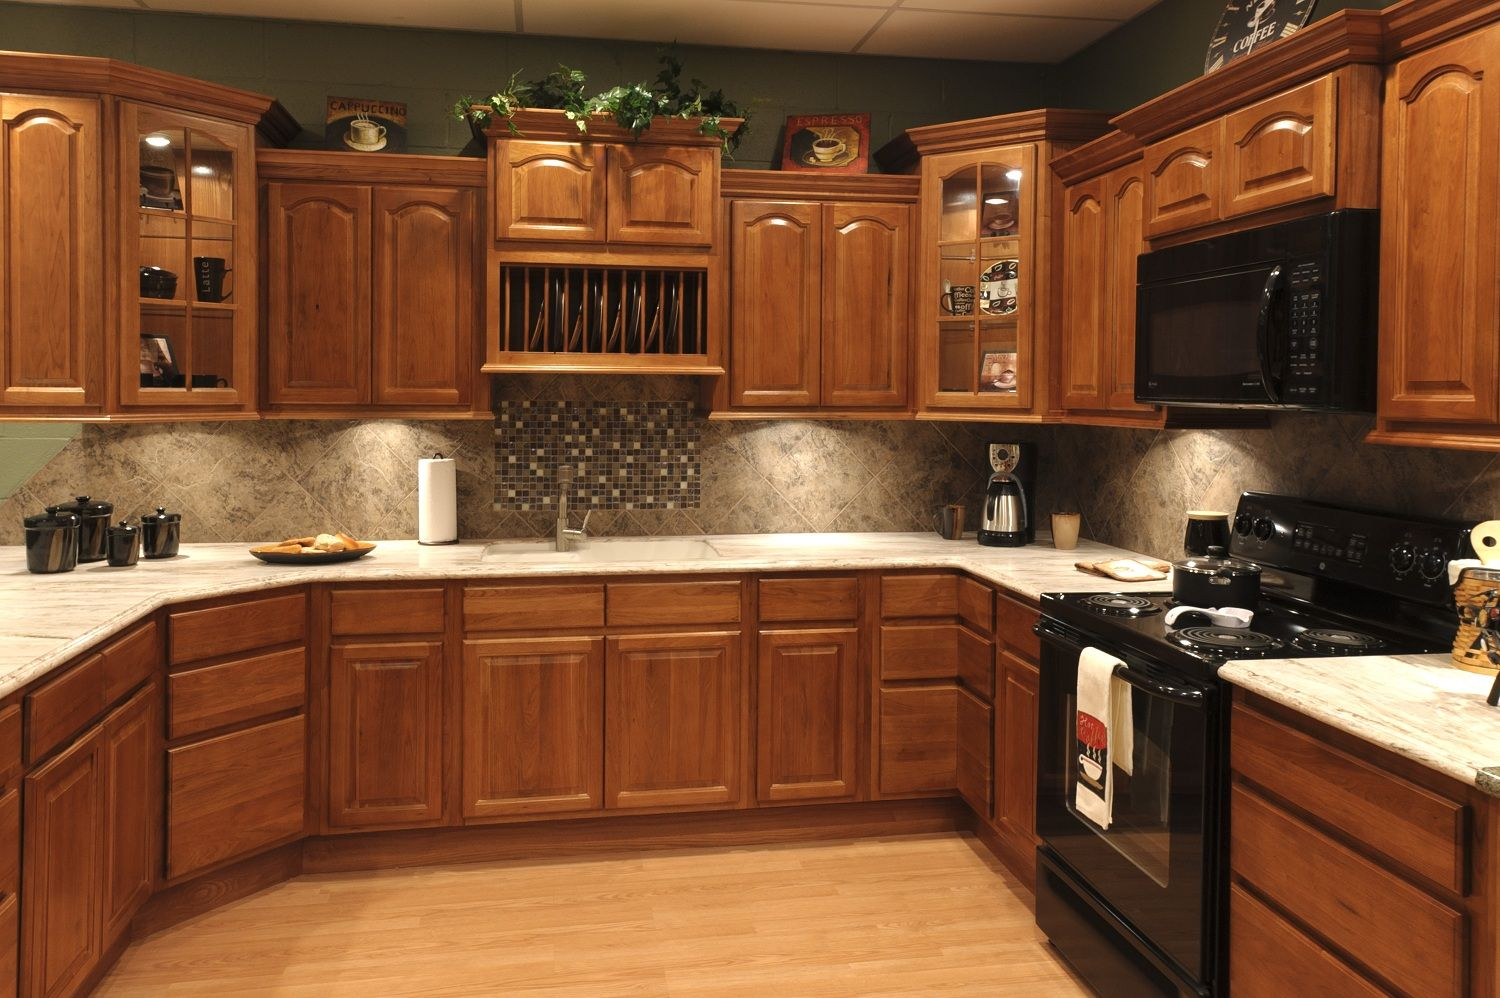 Beautiful kitchen cabinets windy hill hardwoods for Black kitchen cabinet design ideas